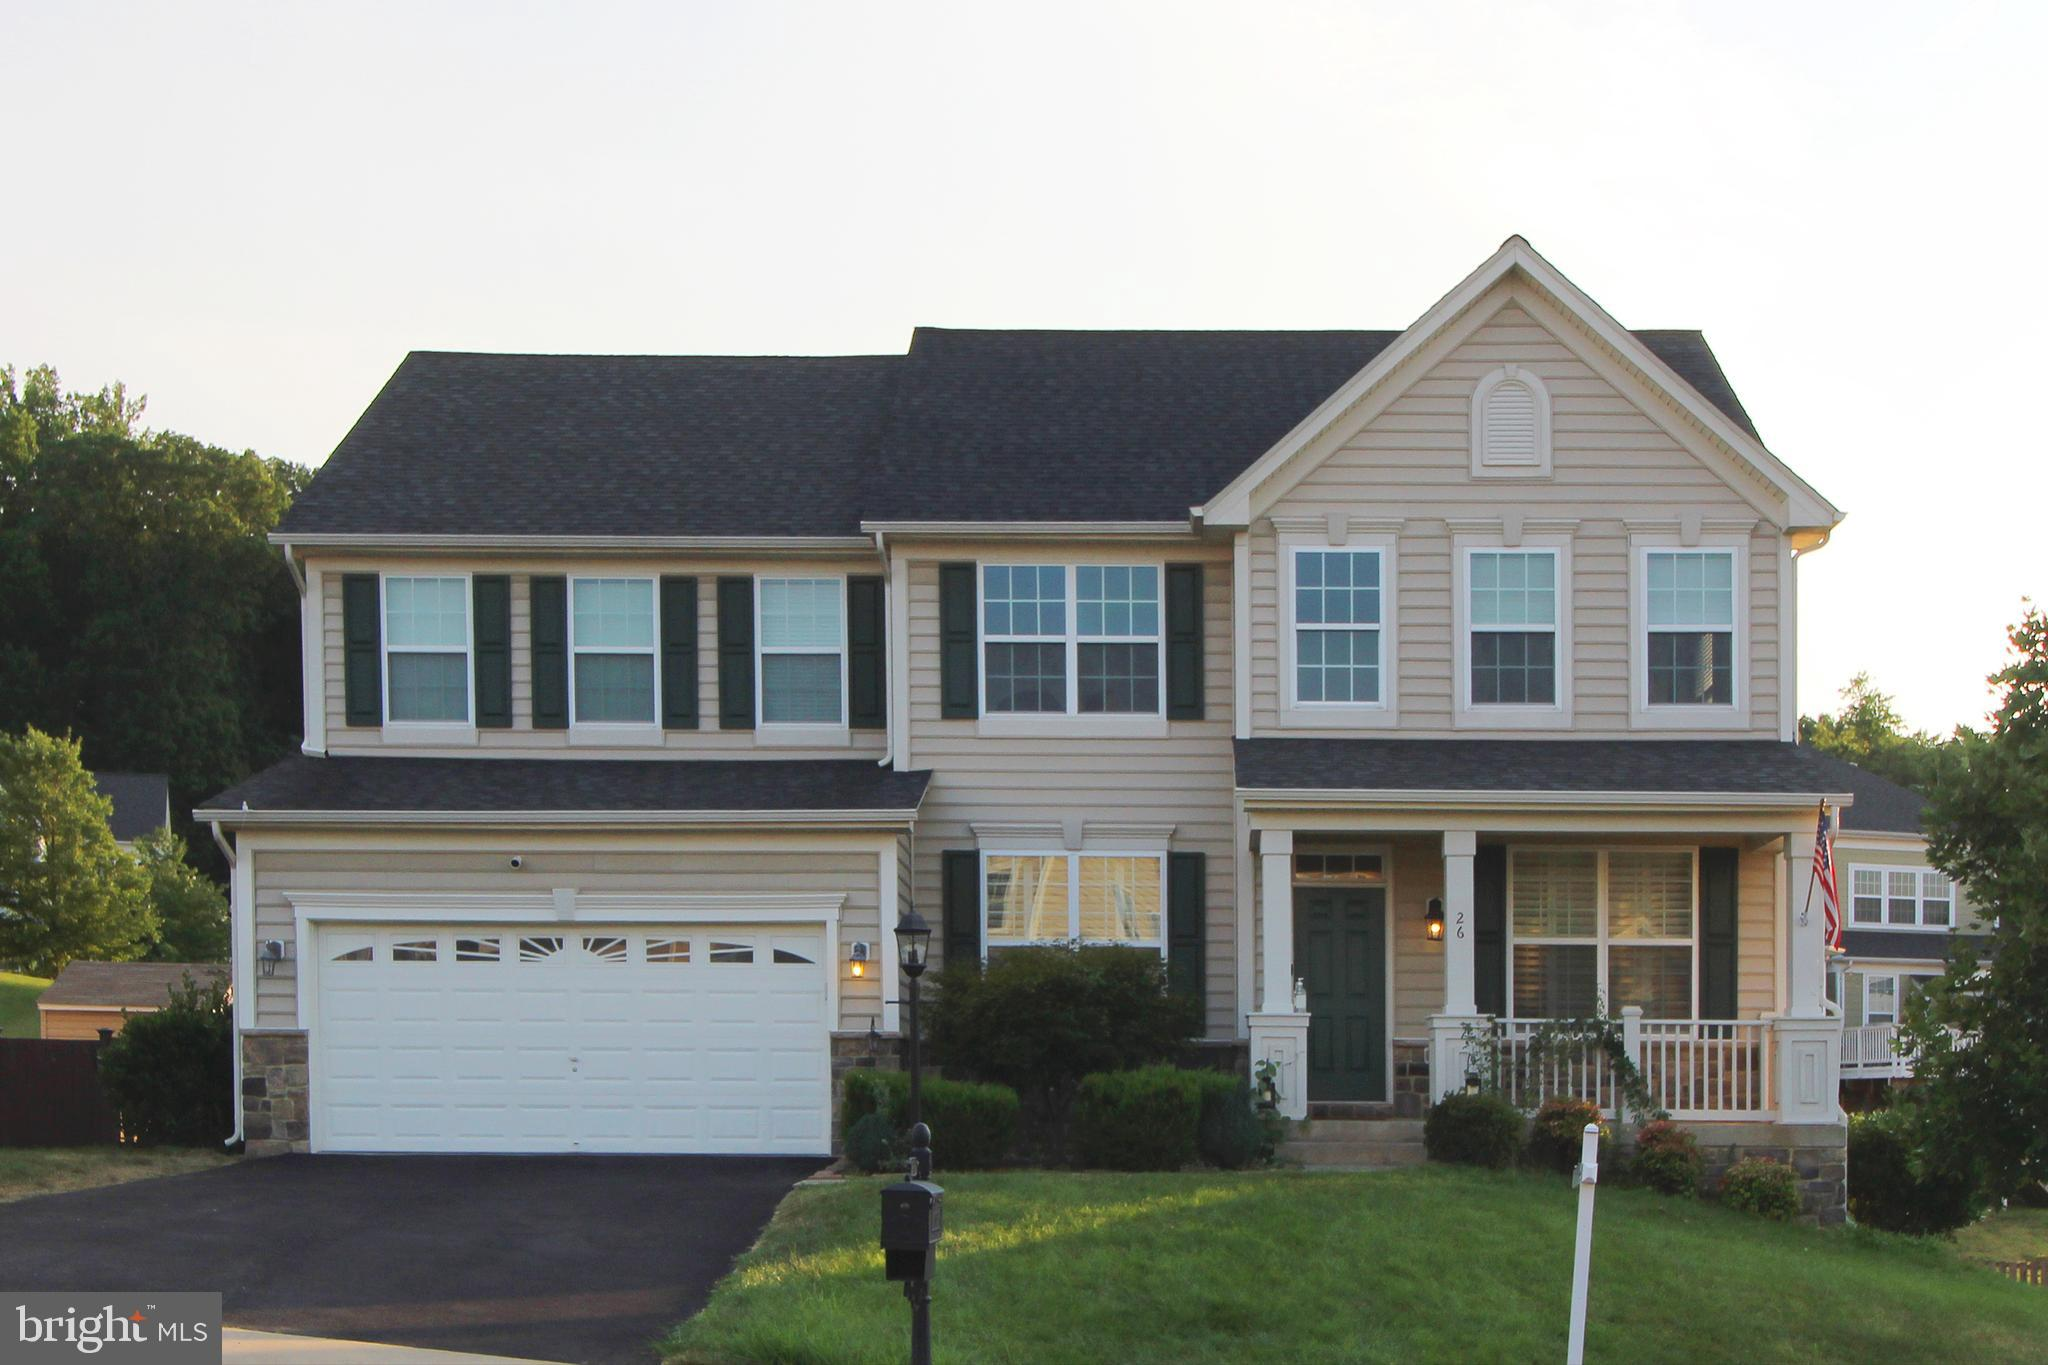 GORGEOUS DREES HOME IN HILLS OF AQUIA WITH MANY UPGRADES***HARDIE PLANK SIDING***GORGEOUS JUST REFIN